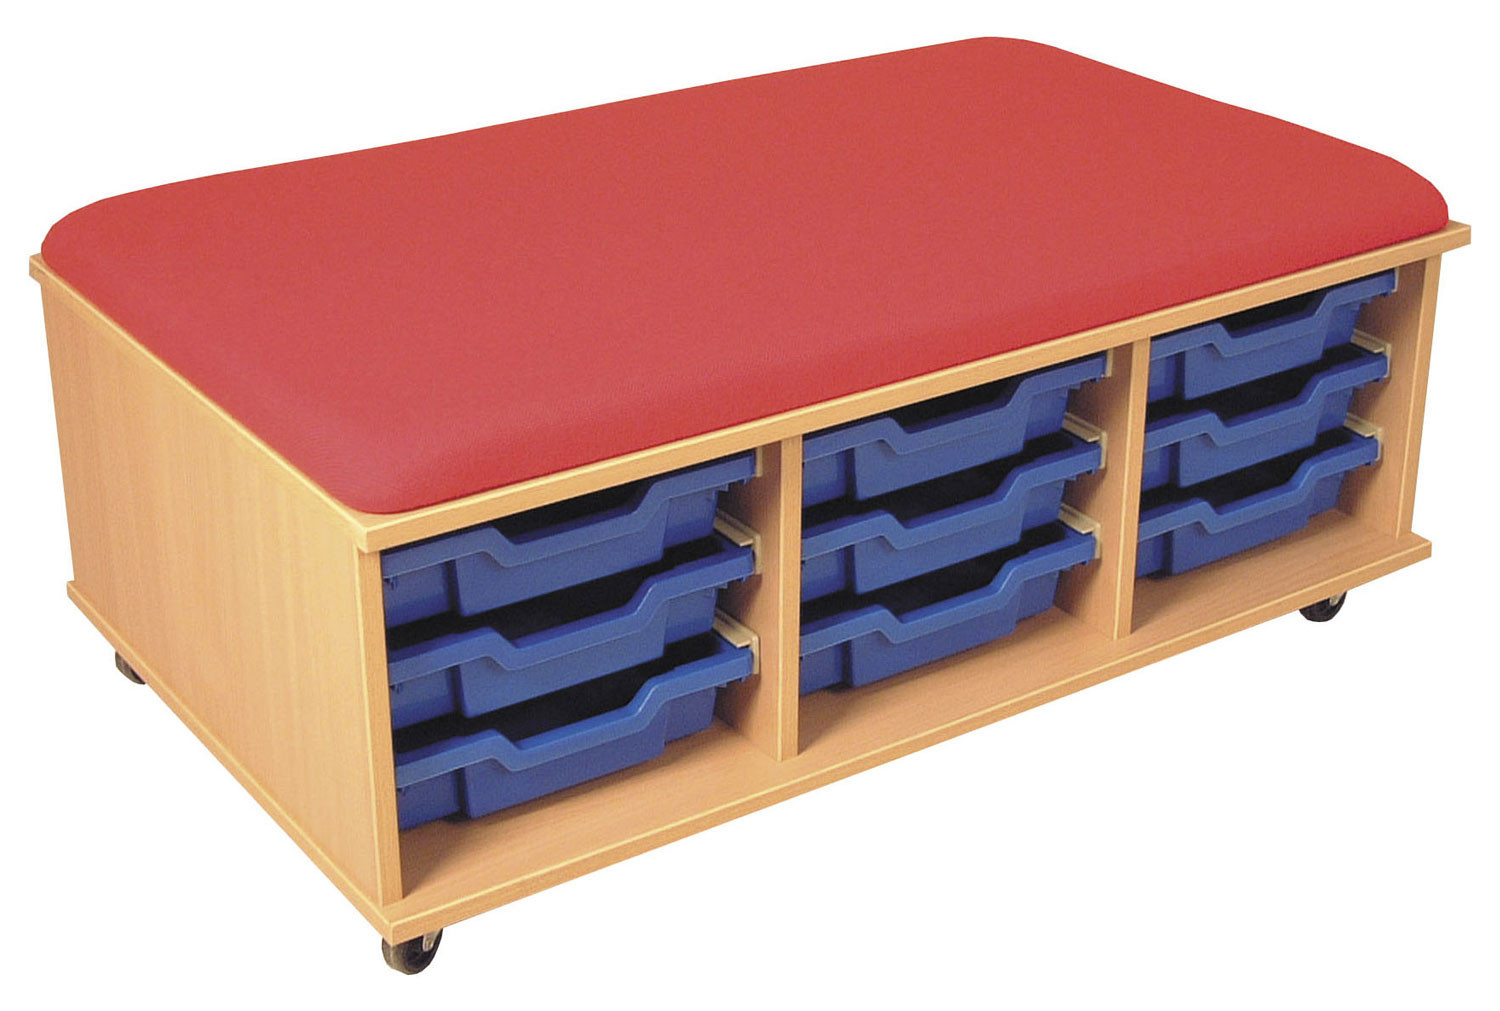 Combi Mobile Storage Unit With Blue Trays And Red Seat